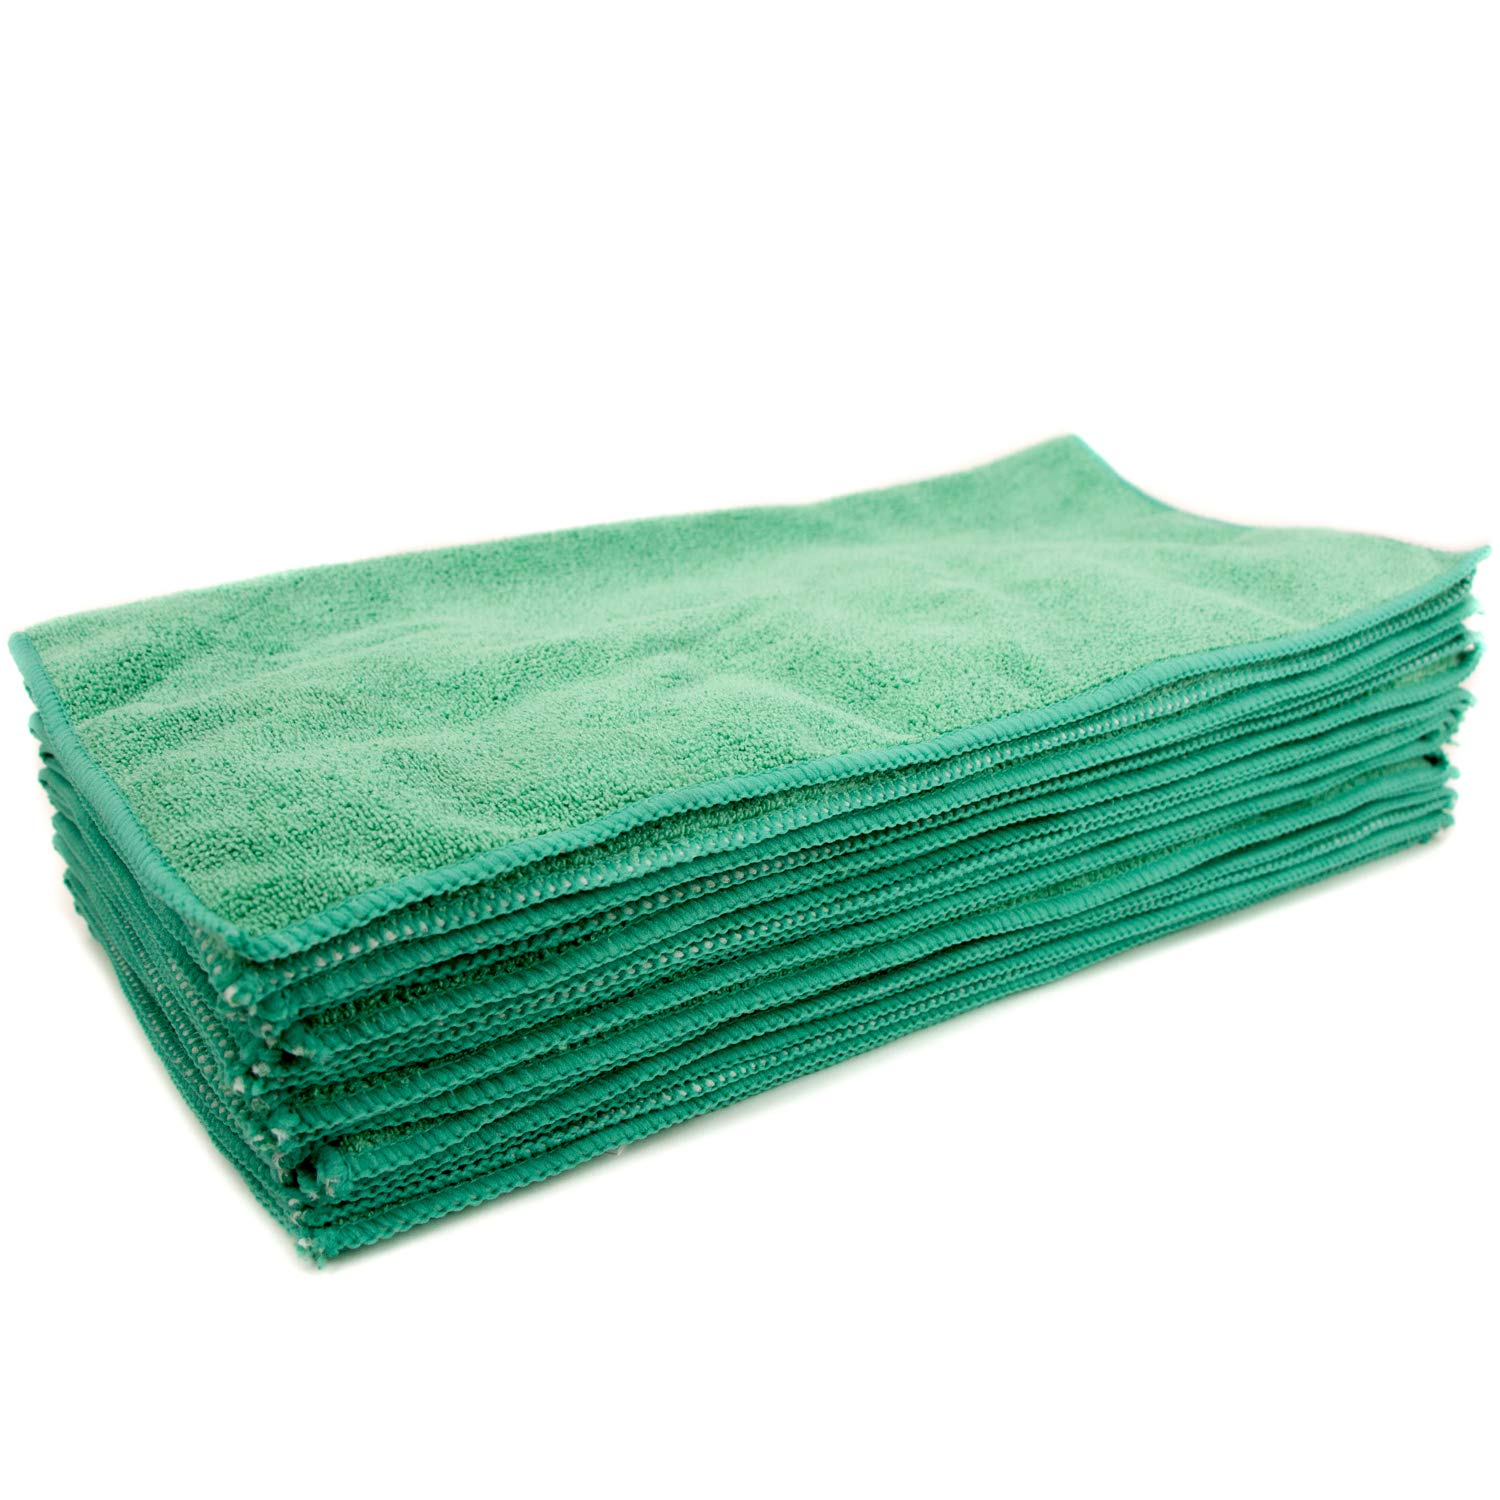 Zwipes Professional Microfiber Cleaning Cloth Towels Green Offices and more Counter Tops Window Cleaner Shop Towels 12-Pack 16x16 inch Towel Set Premium Cleaning Supplies for Car Wash